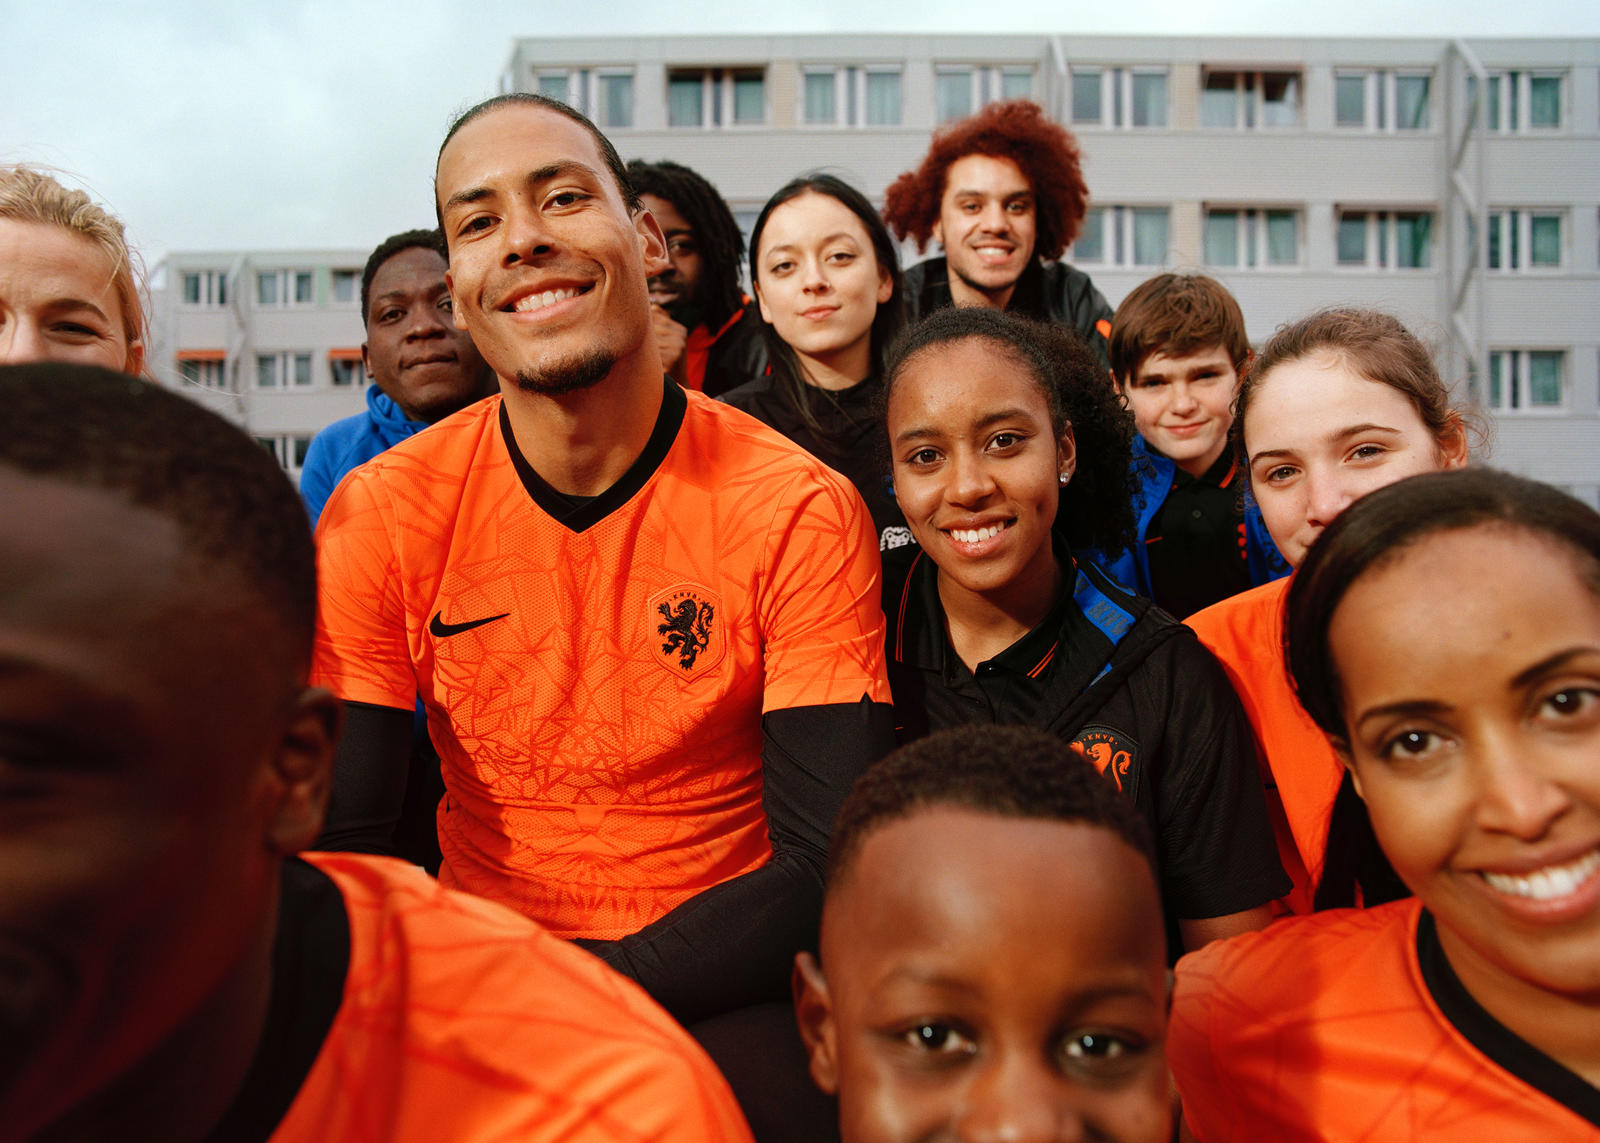 The Netherlands celebrates strength and bravery in new Nike collection 6